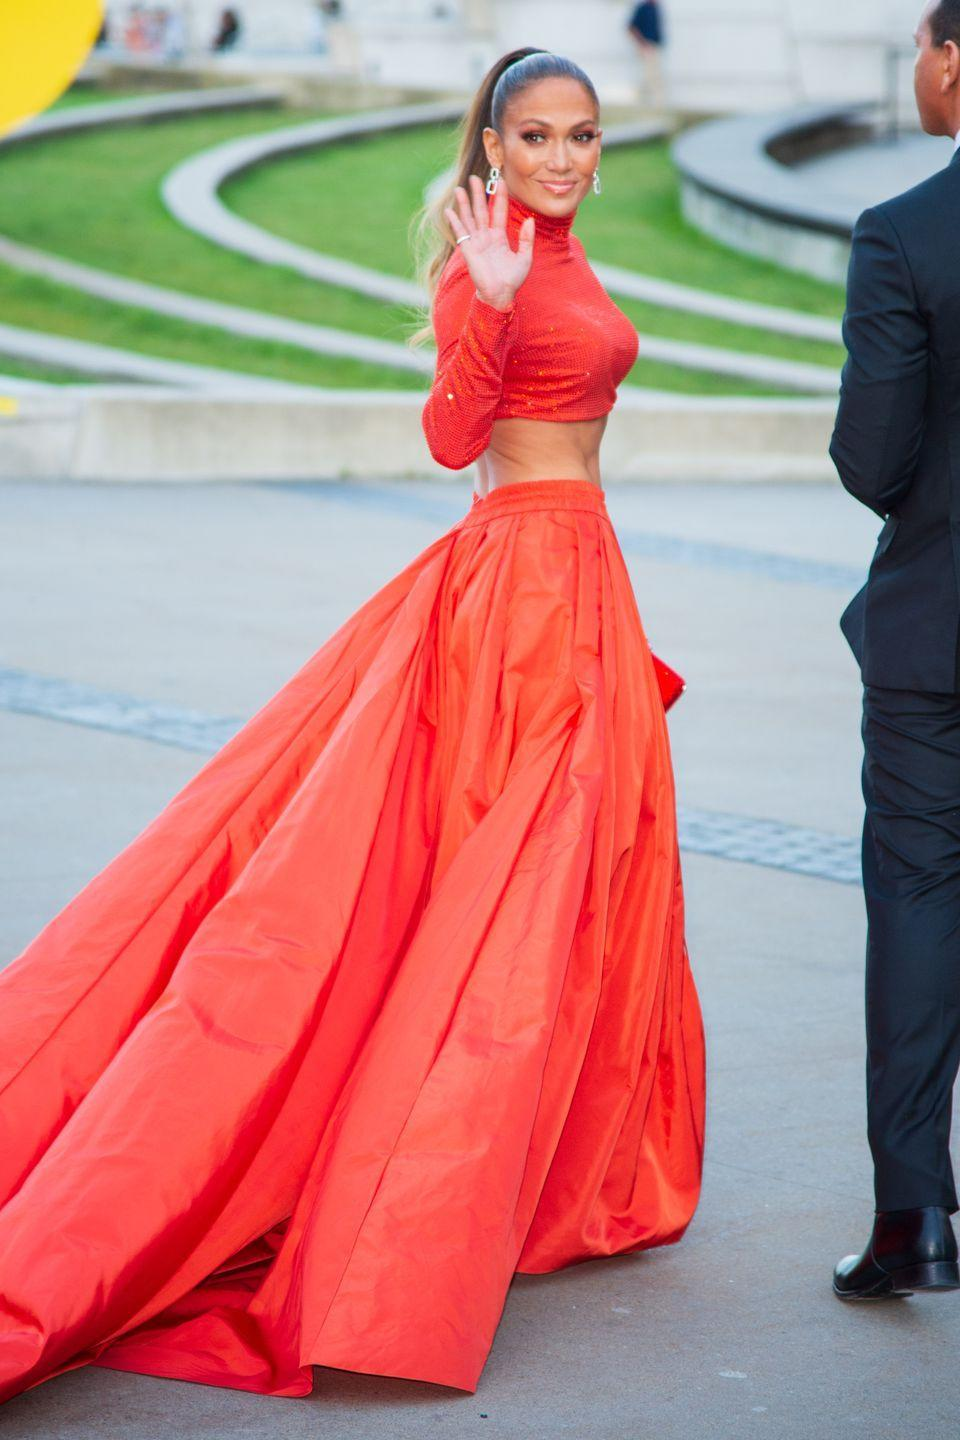 "<p>J.Lo pulls up to the CFDA Fashion Awards at the Brooklyn Museum in a bright-orange, ab-baring crop top and skirt by Ralph Lauren Collection. Also important? Her 'fit had a casual <a href=""https://www.elle.com/culture/celebrities/a27705252/jennifer-lopez-dress-cfda-fashion-awards-2019/"" rel=""nofollow noopener"" target=""_blank"" data-ylk=""slk:43,200 crystals"" class=""link rapid-noclick-resp"">43,200 crystals</a> on it. </p>"